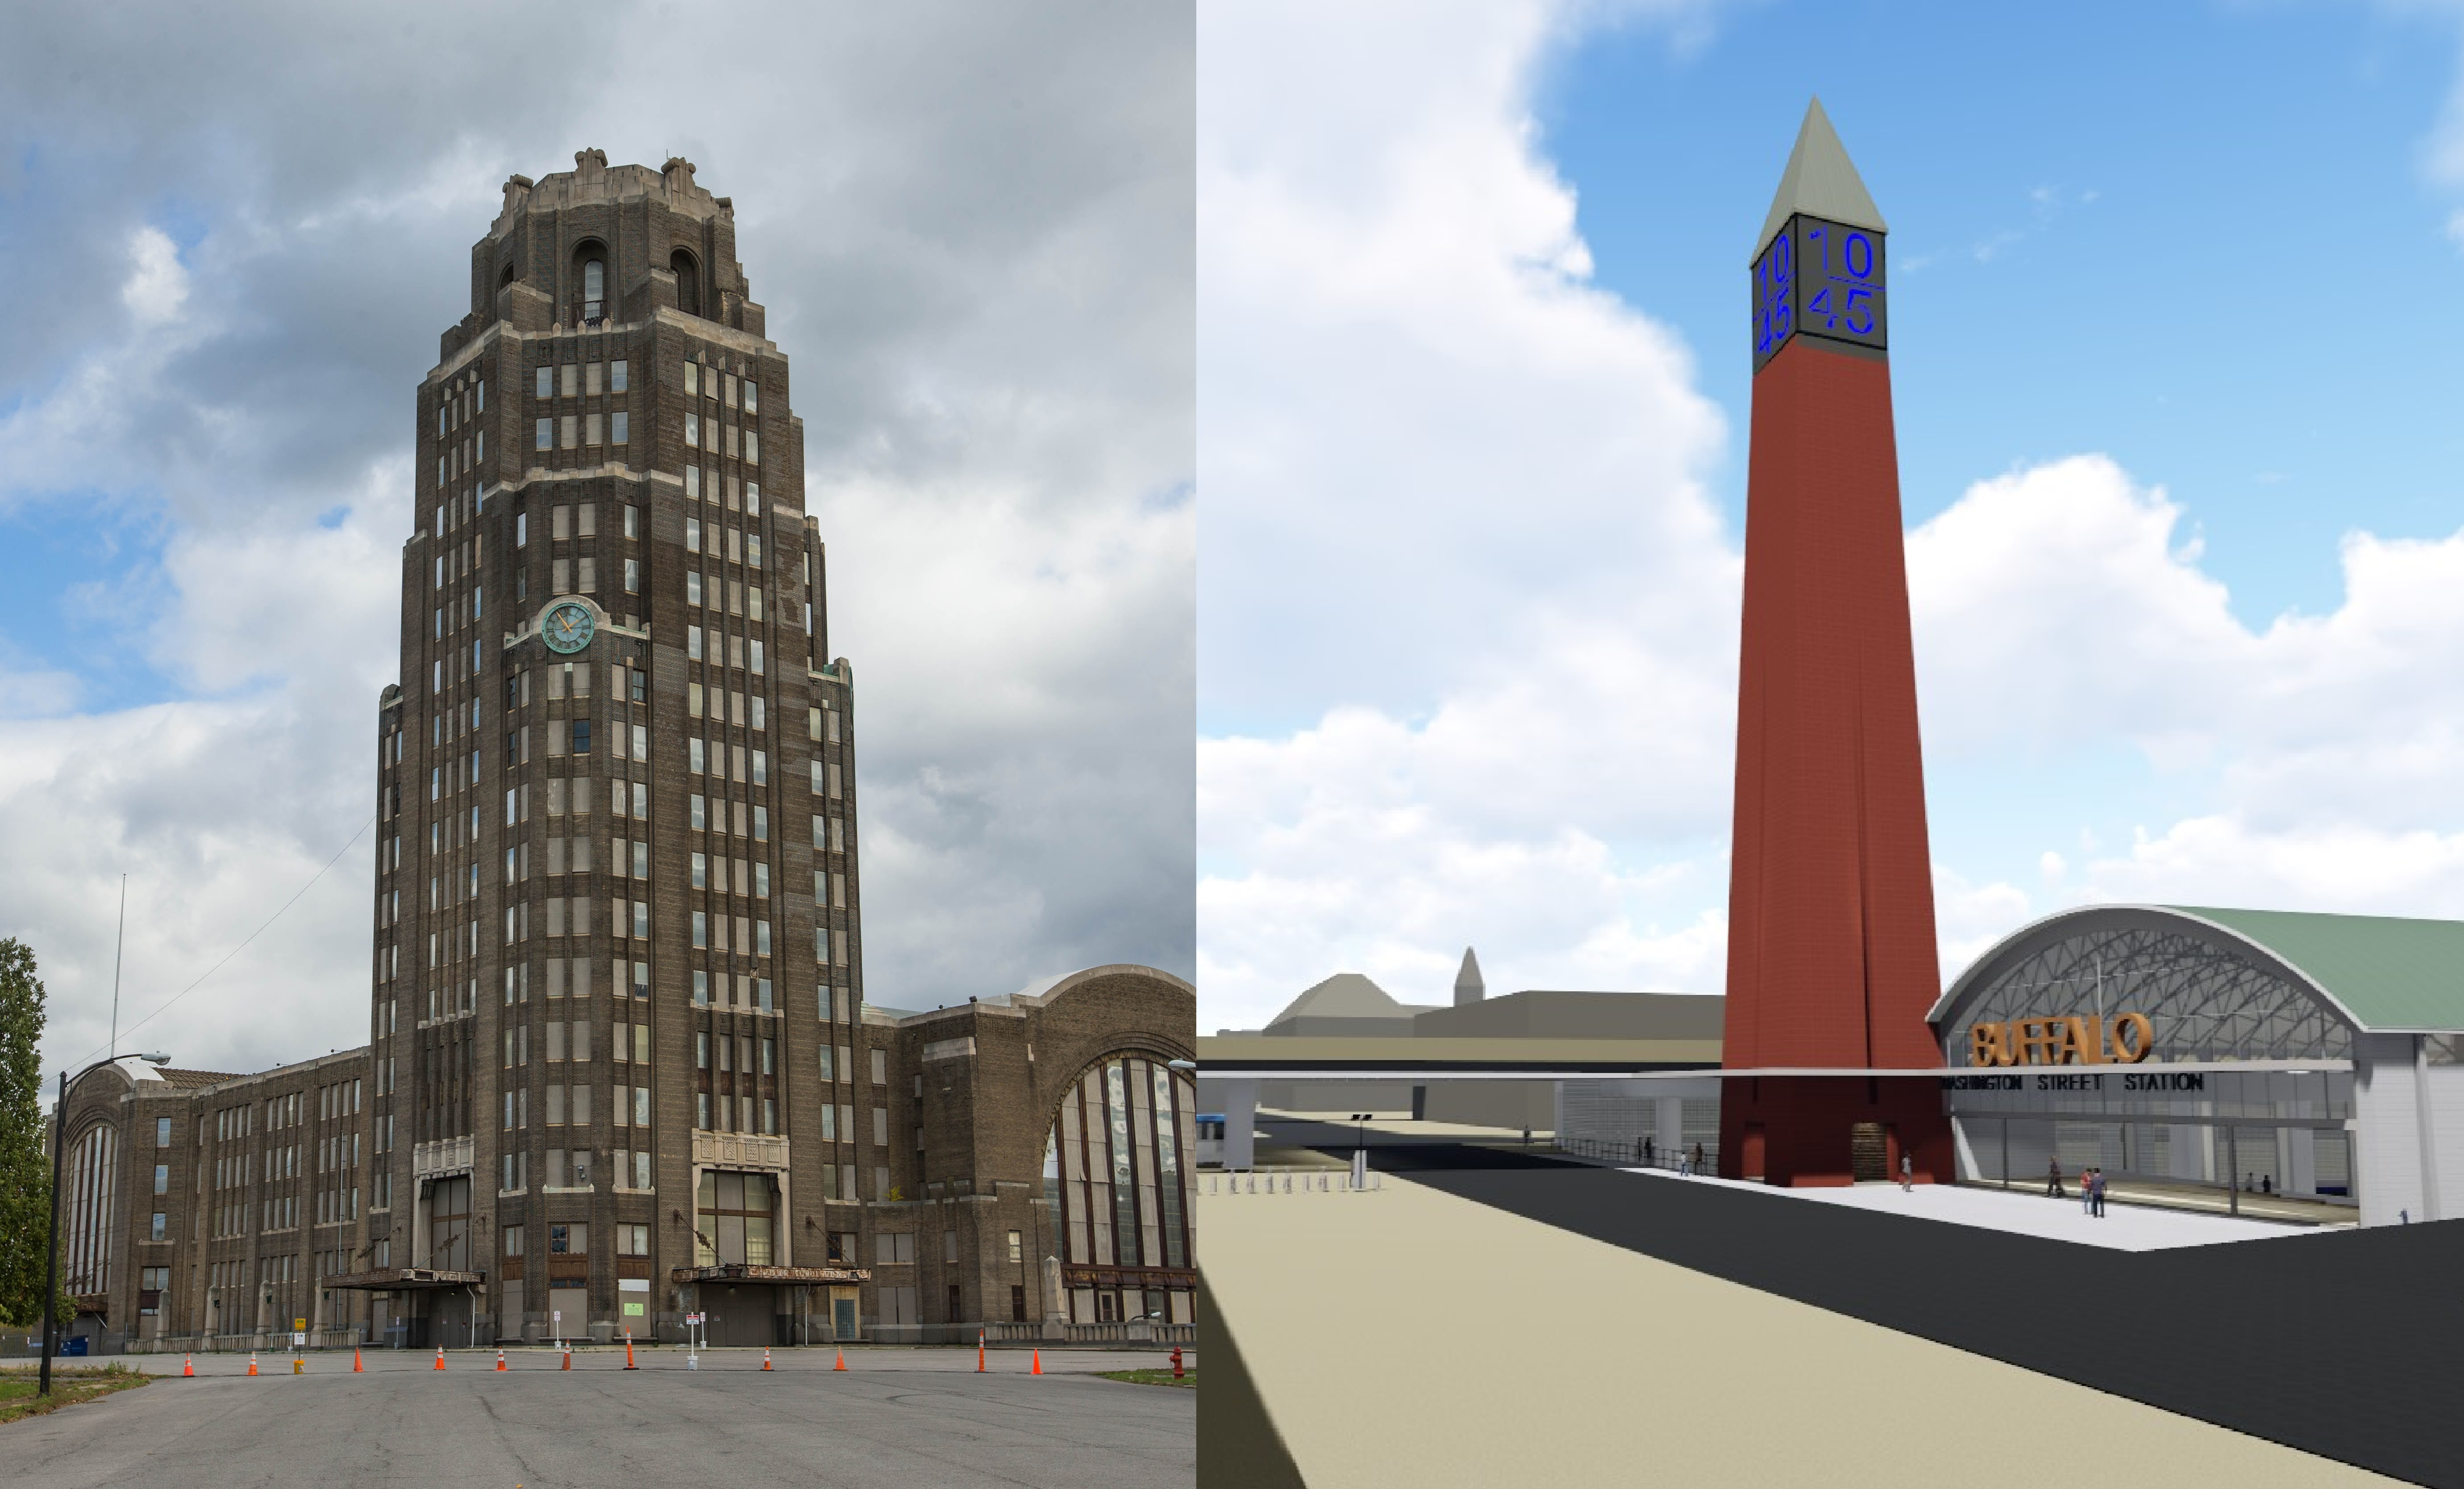 The Central Terminal on the East Side, left, is one site being considered for a new Amtrak station. So is a proposal by the Campaign for Greater Buffalo that would create a downtown train and bus facility across the tracks from the current Exchange Street station, off Washington Street.